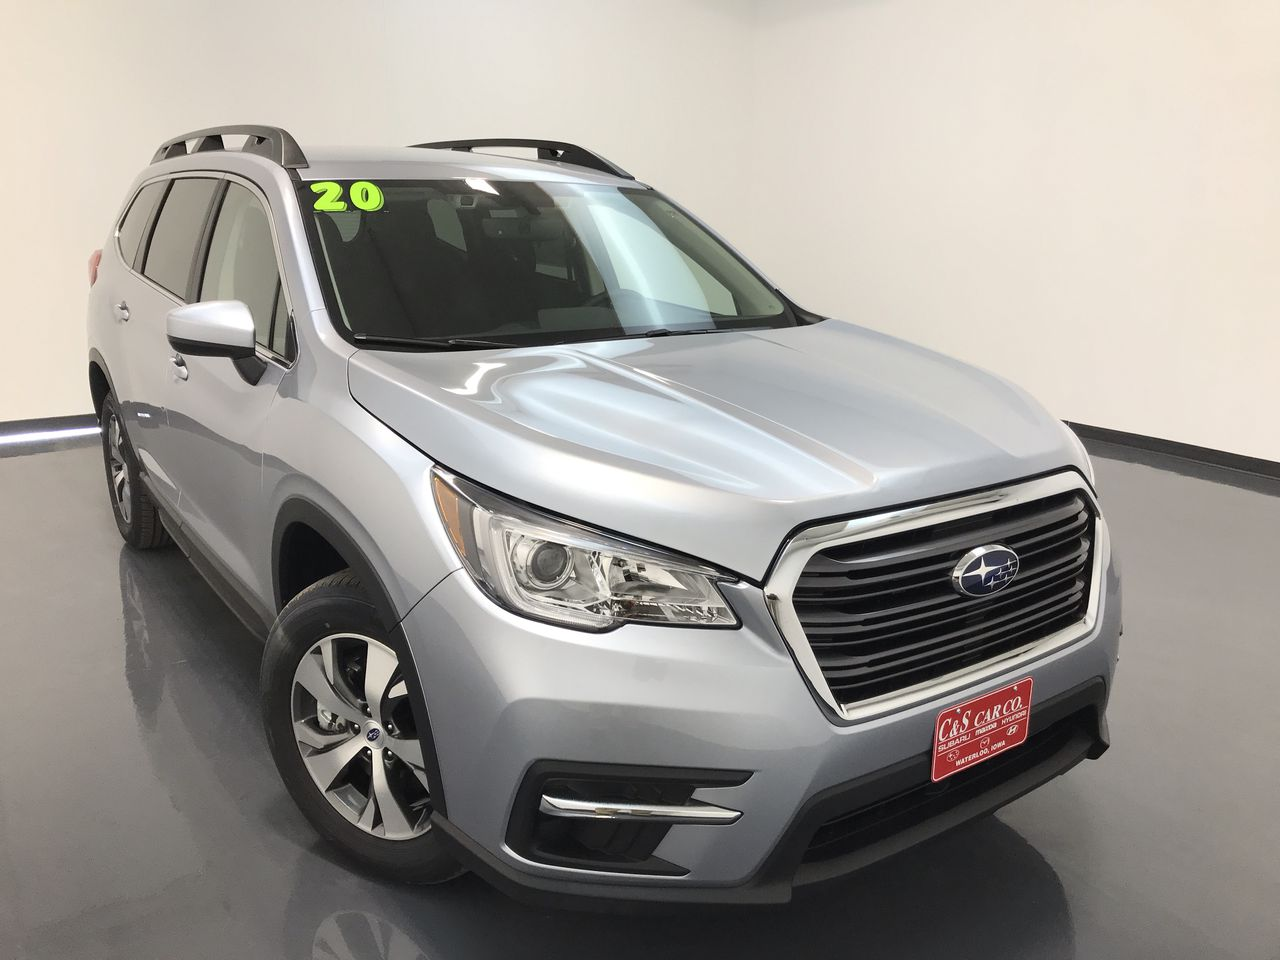 2020 Subaru ASCENT Premium AWD w/Eyesight  - SB8049  - C & S Car Company